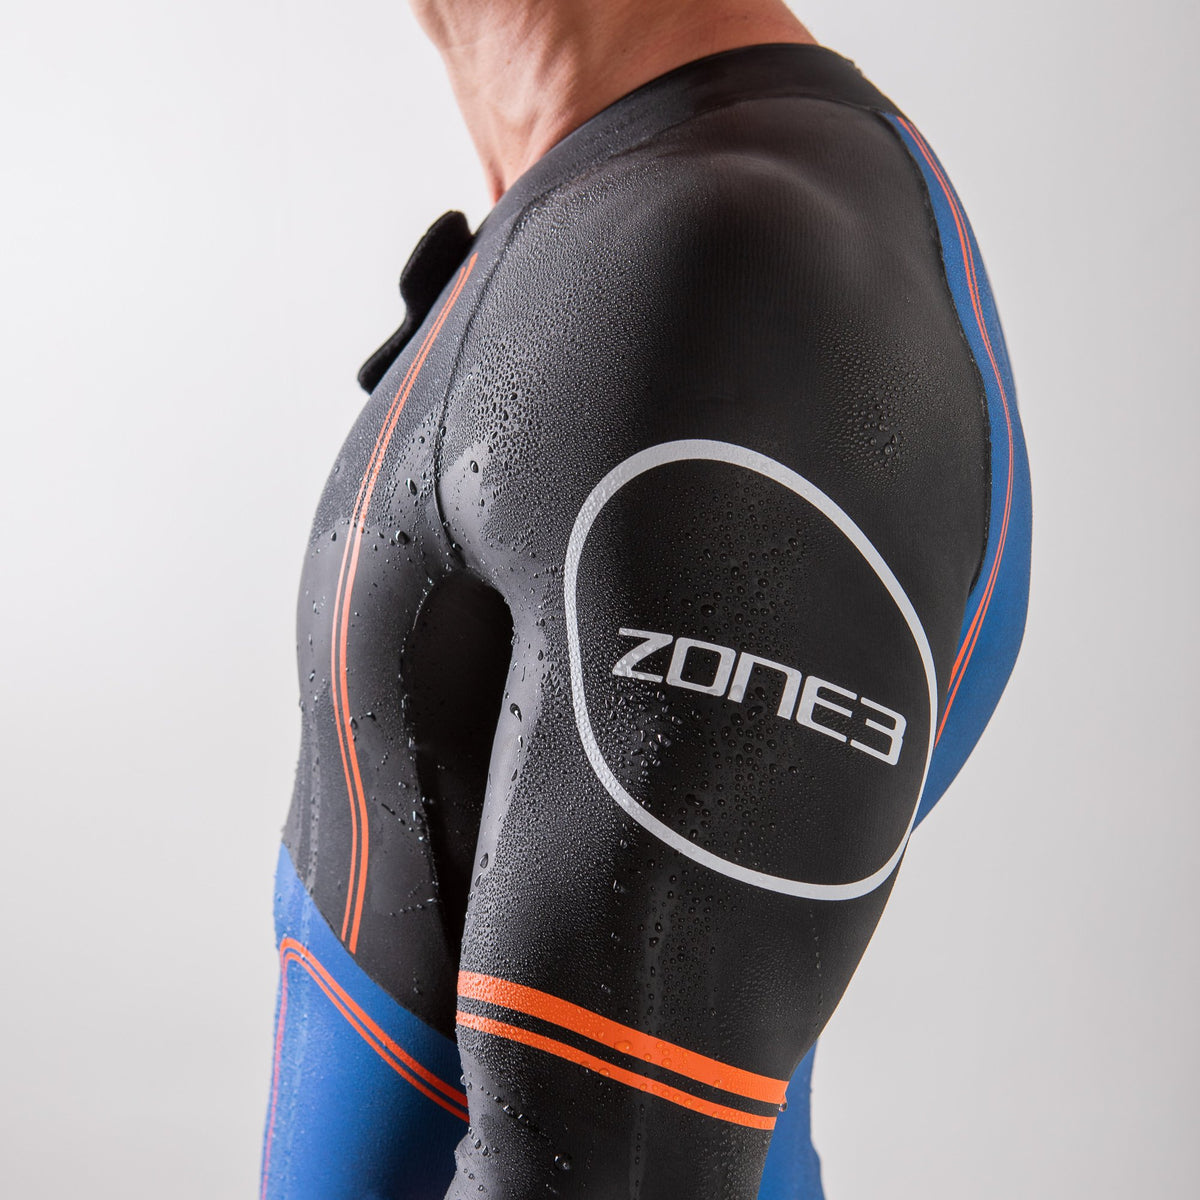 Men's Swim-Run Evolution Wetsuit with 8mm Calf Sleeves arm